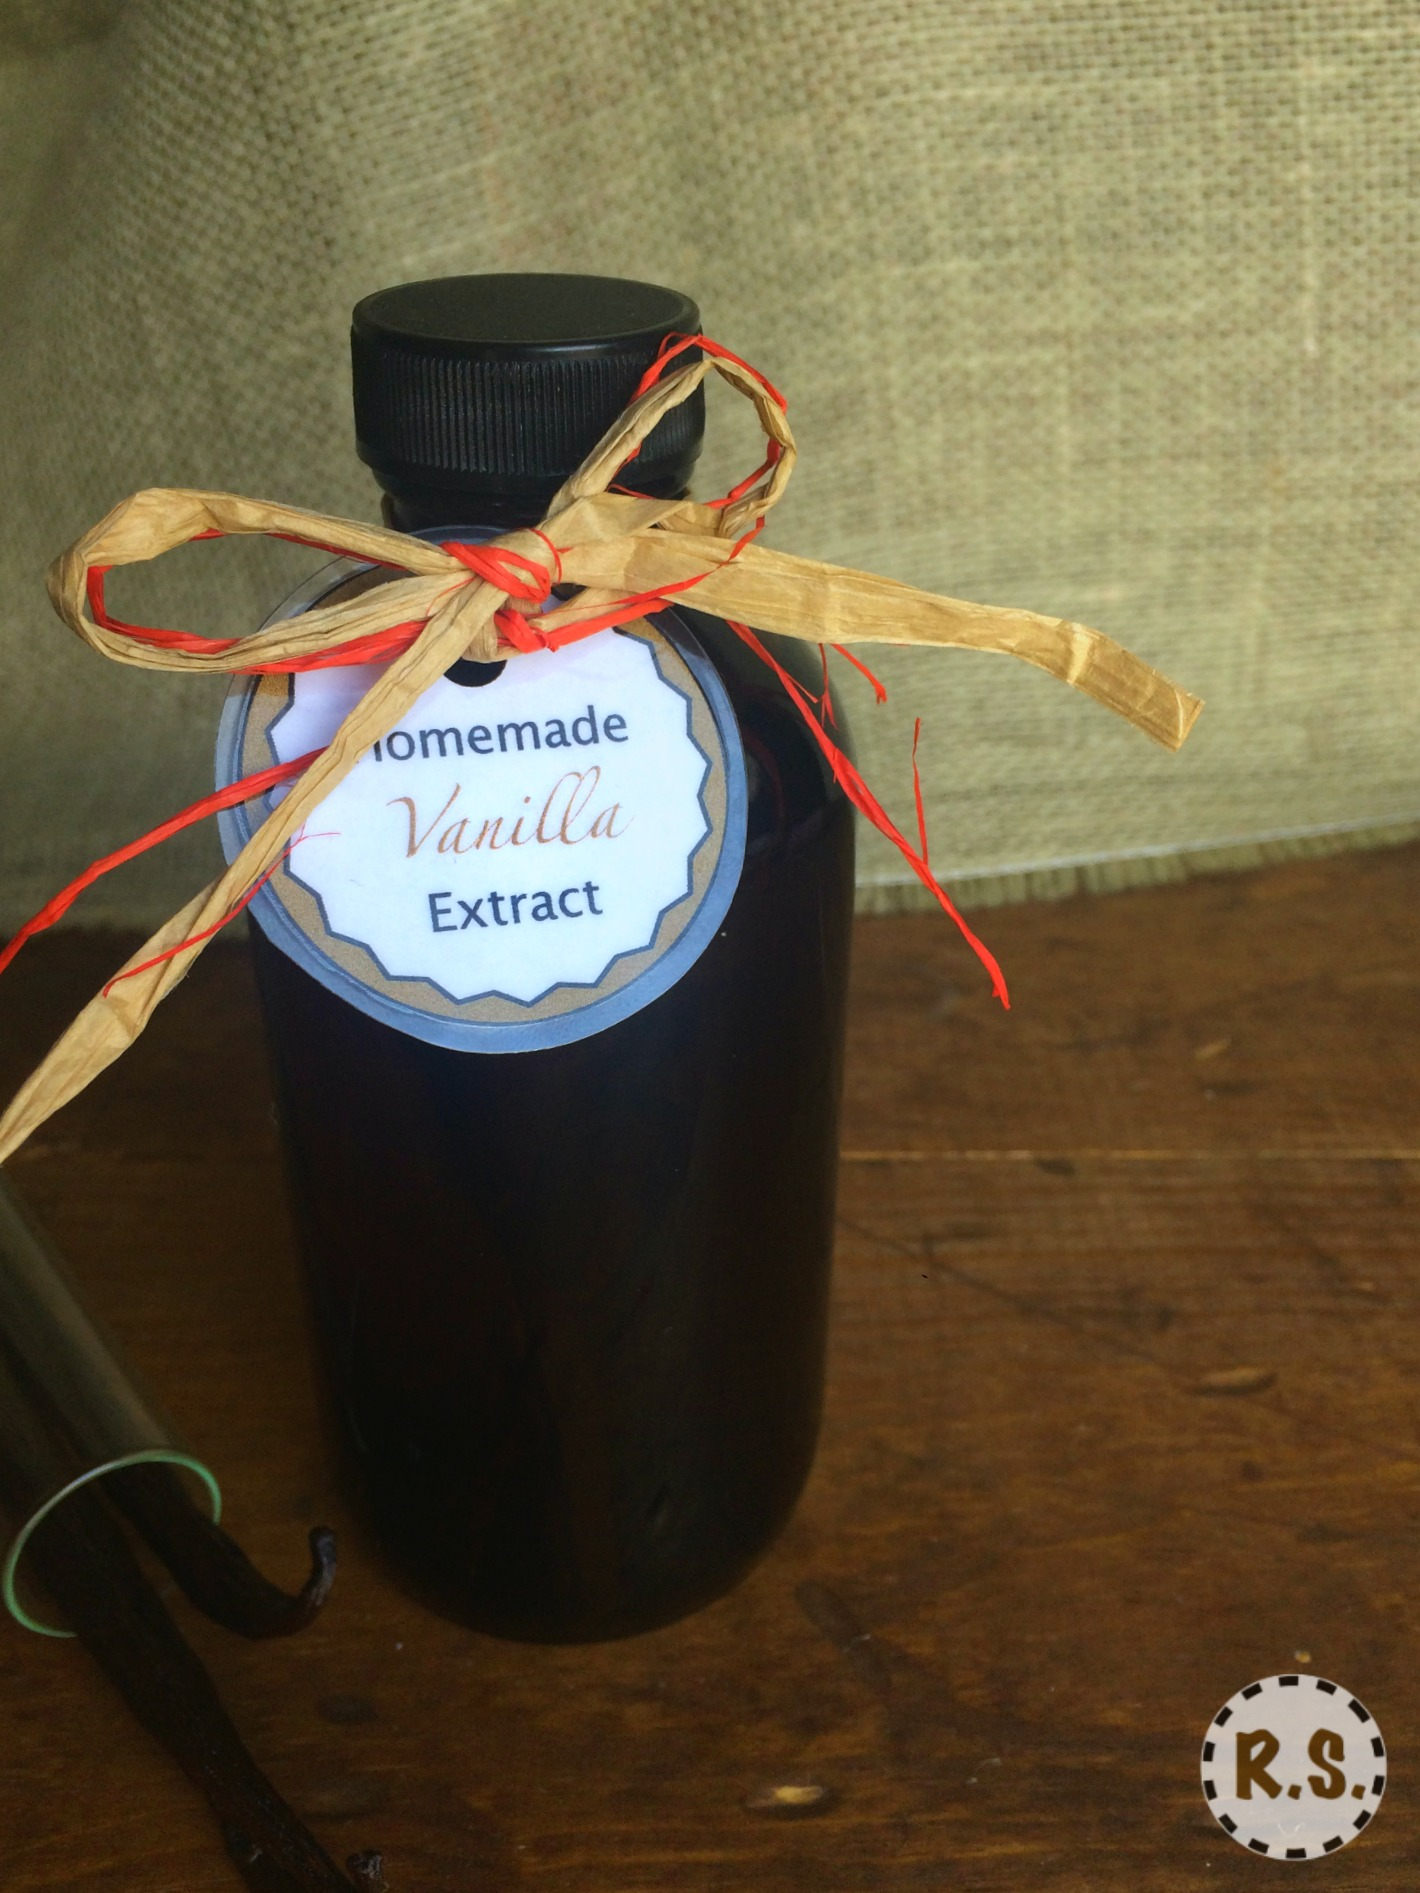 Learn how to make homemade vanilla extract with this easy DIY vanilla extract recipe! Then download my FREE printable labels, tie on with a cute piece of baker's twine and...voila! A beautiful gift.